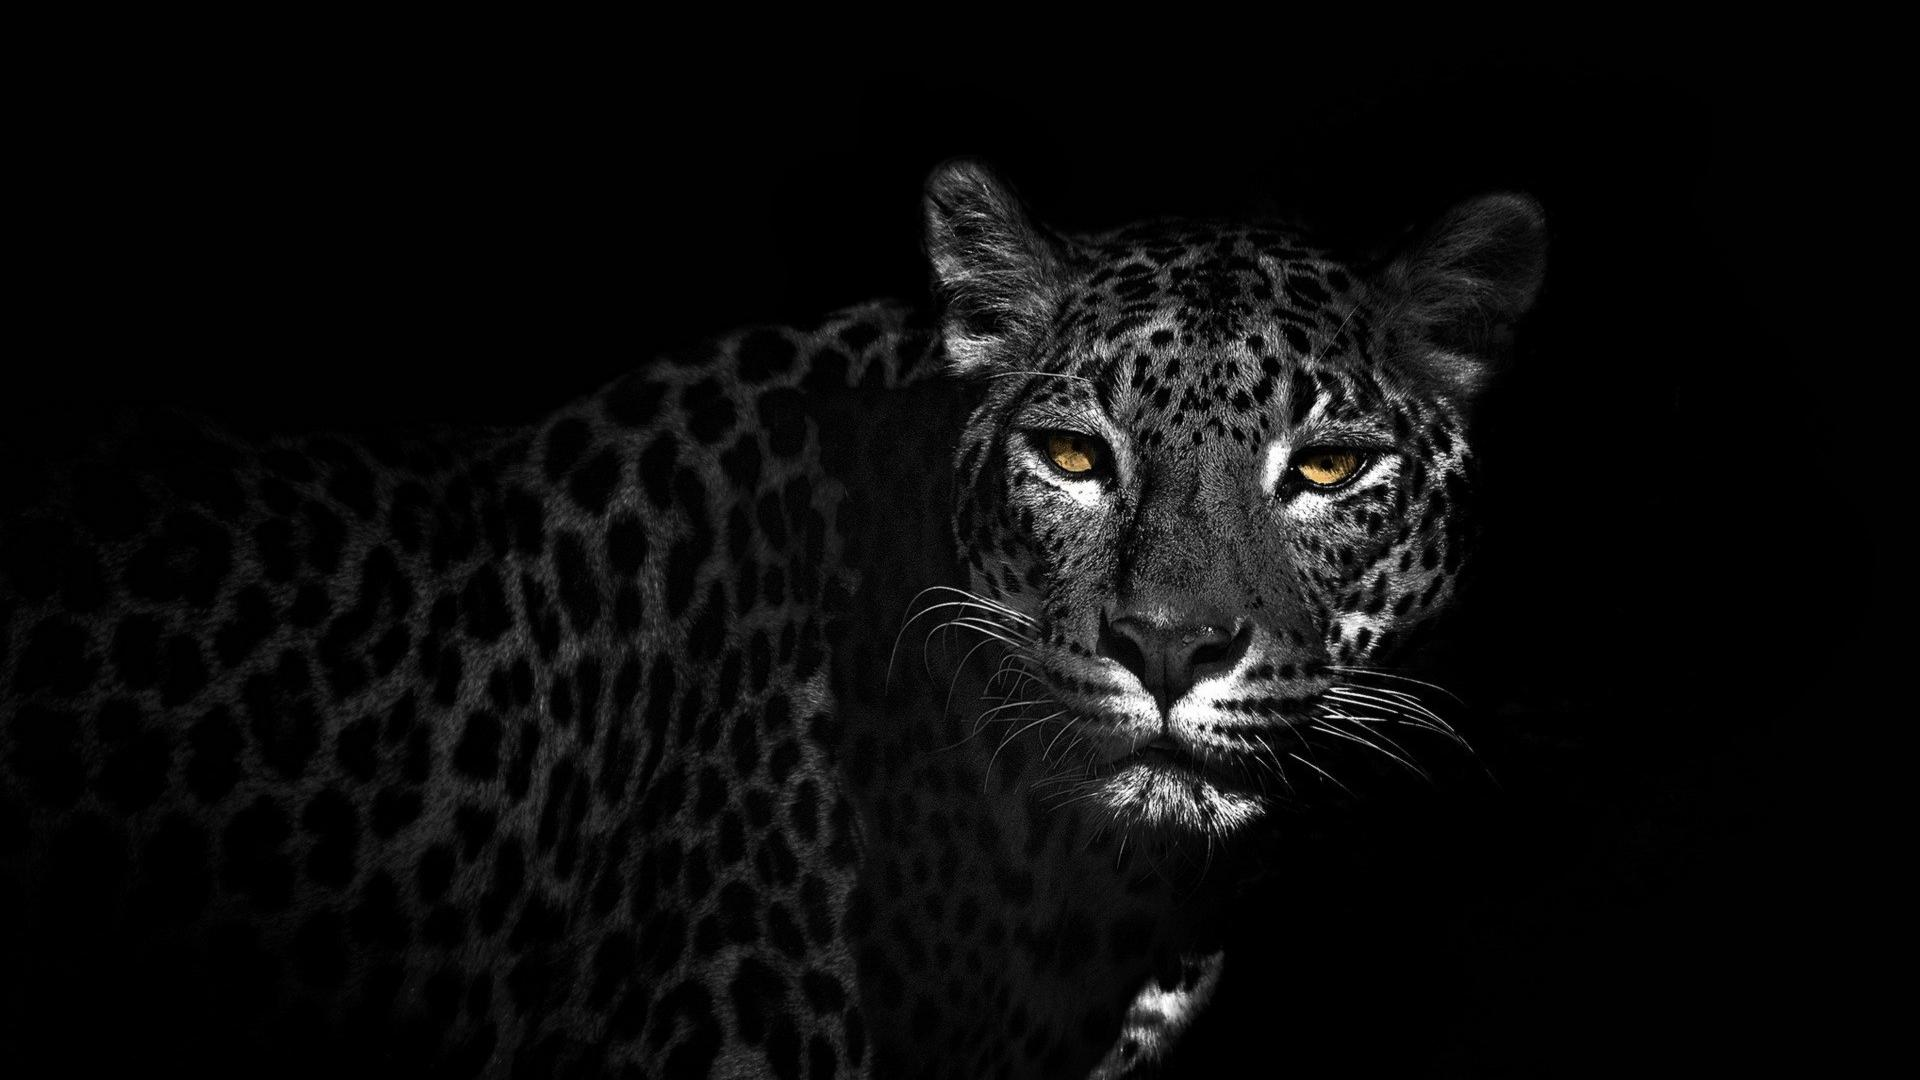 Nature Lion Big Cats Fury Angry Portrait Monochrome: Black And White Animal Wallpaper